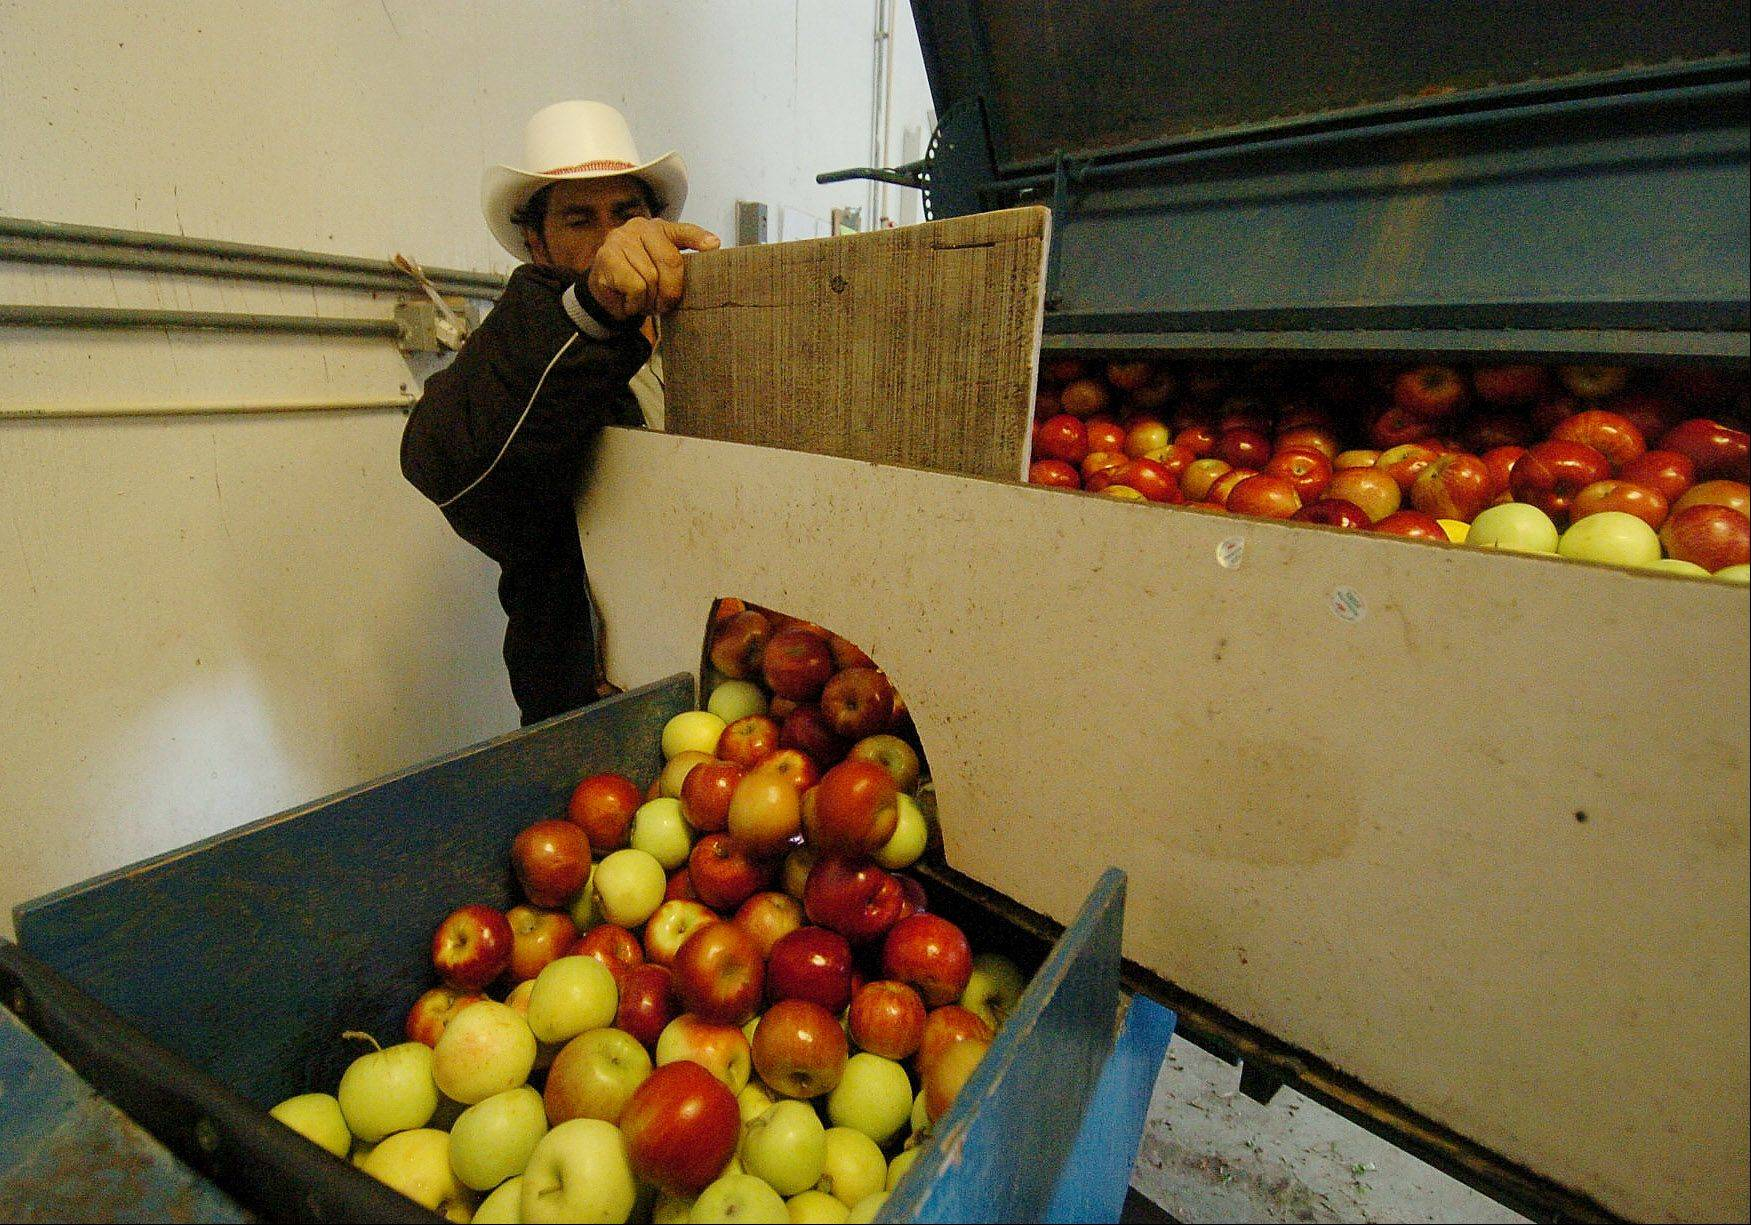 Alfonso Umana loads the apple washer with apples to be washed and processed into apple cider.